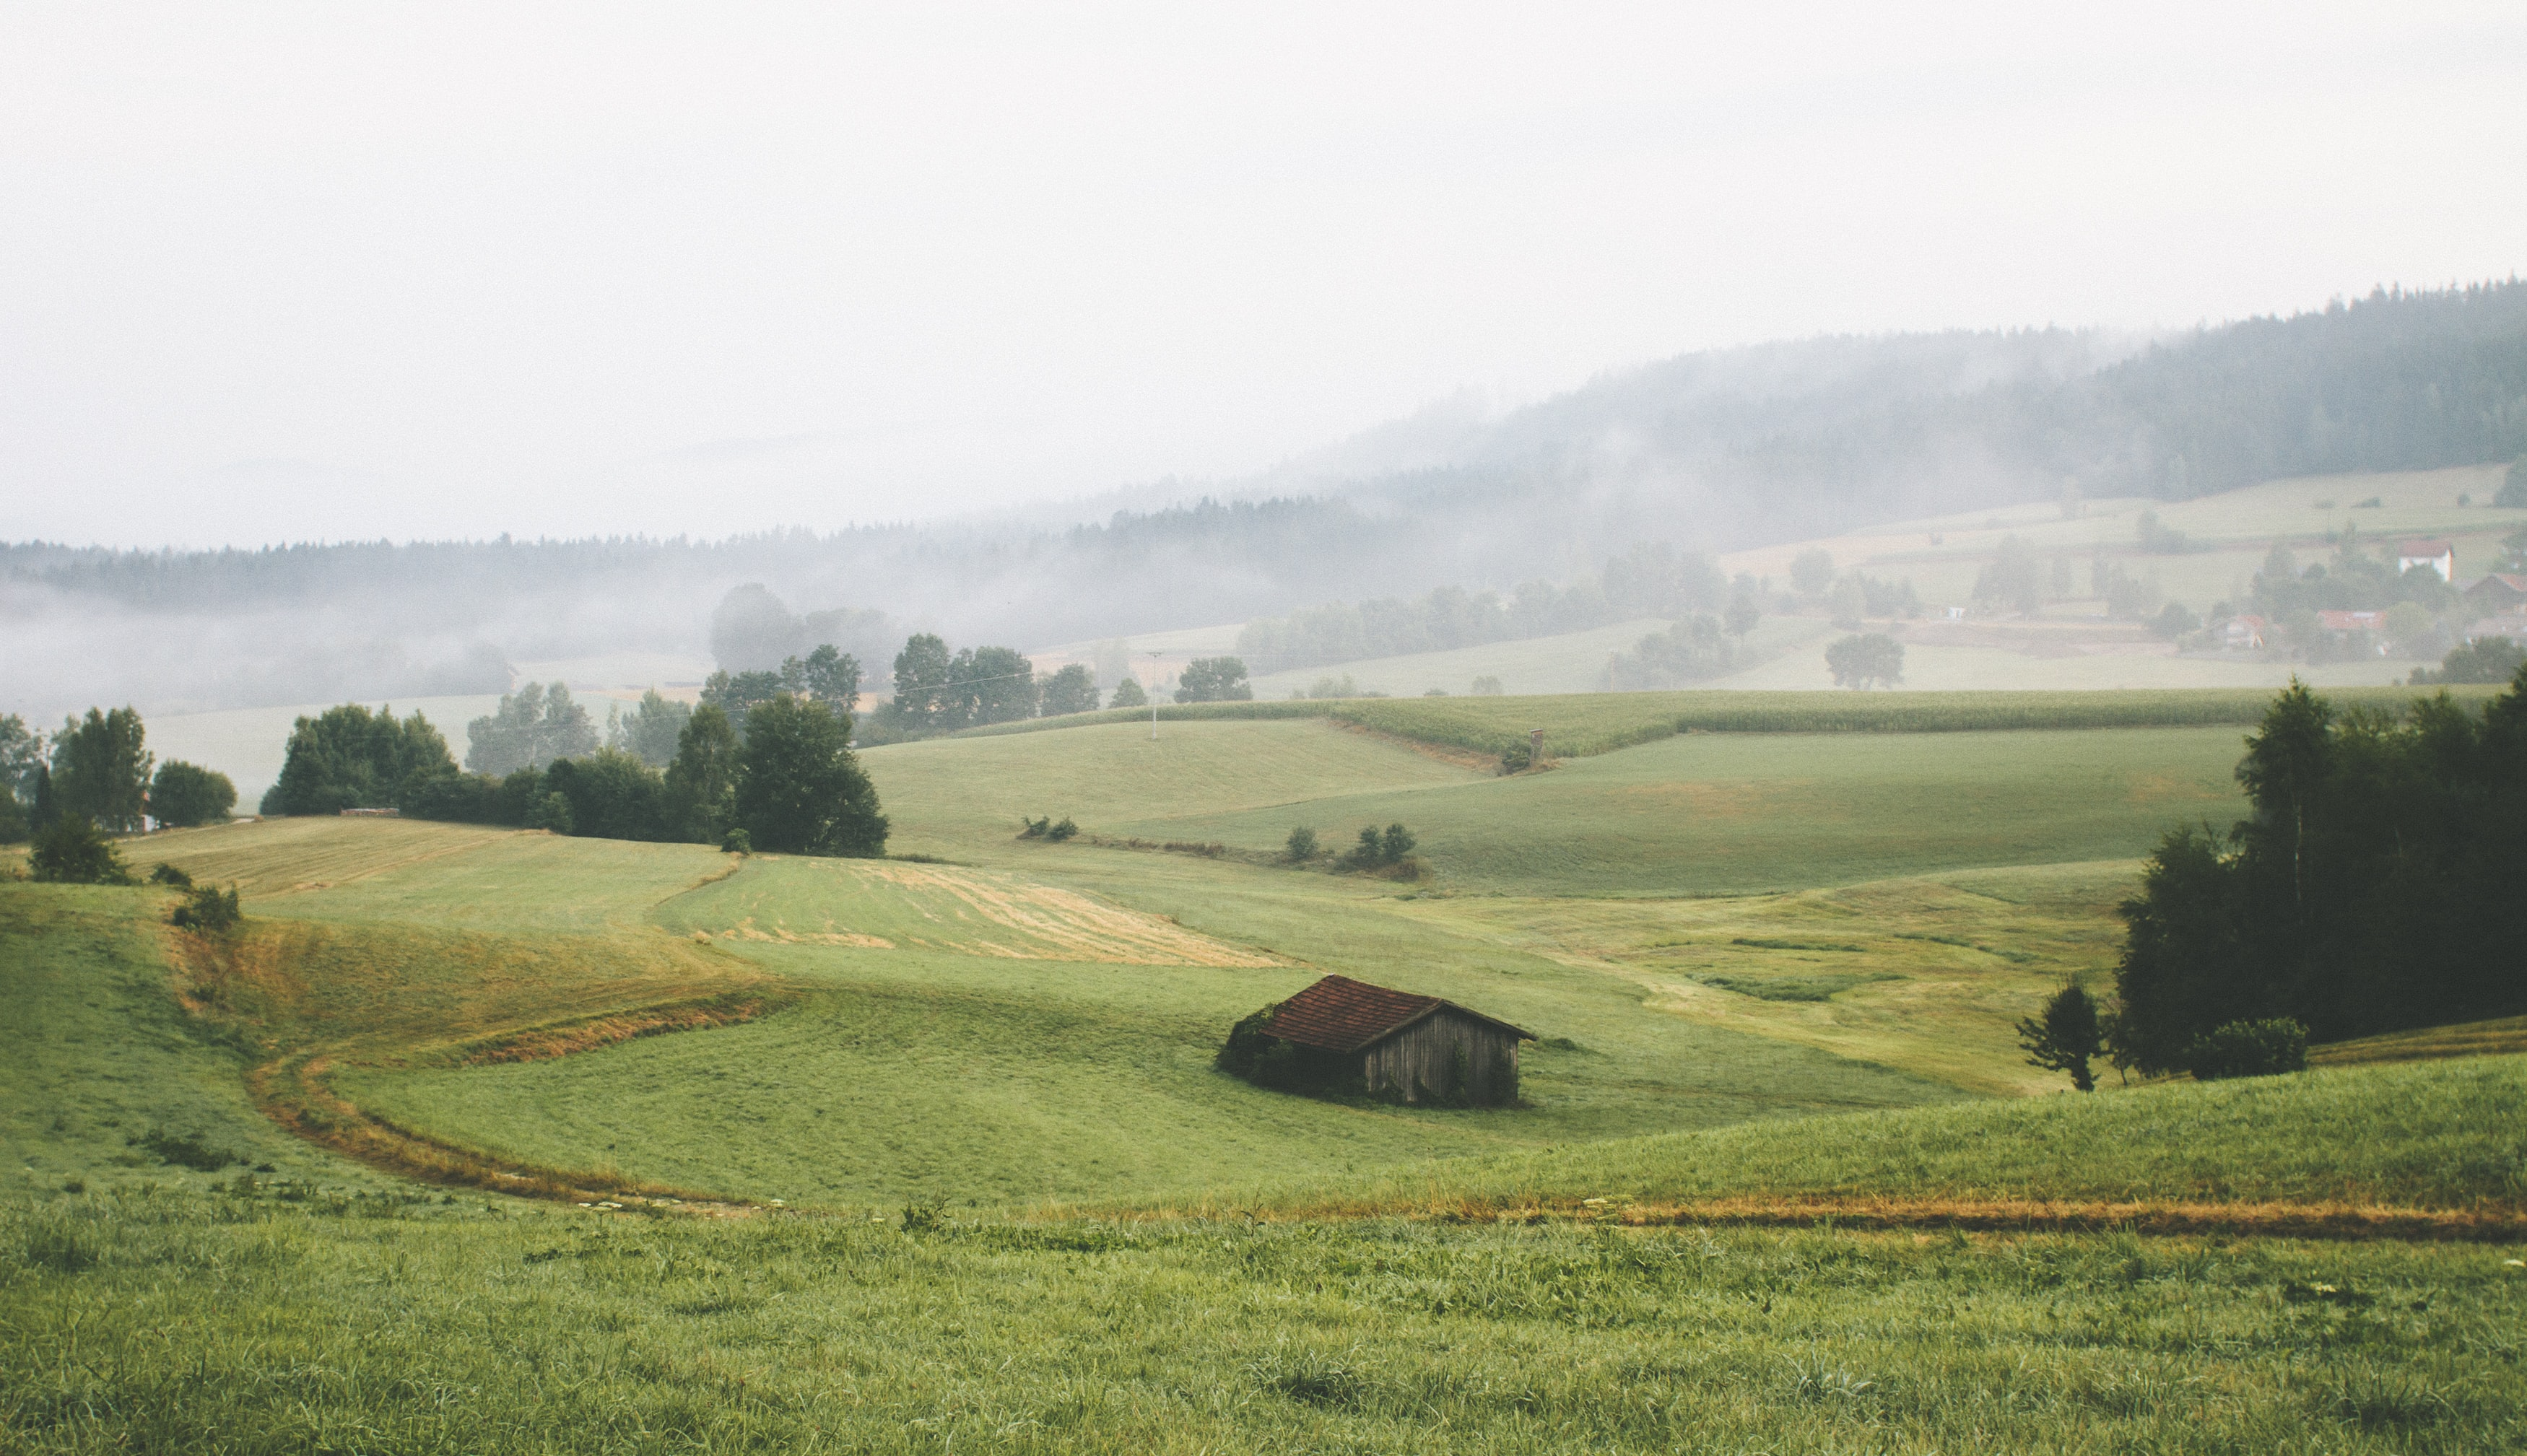 An old barn in a green field with mist obscuring the forest in the distance